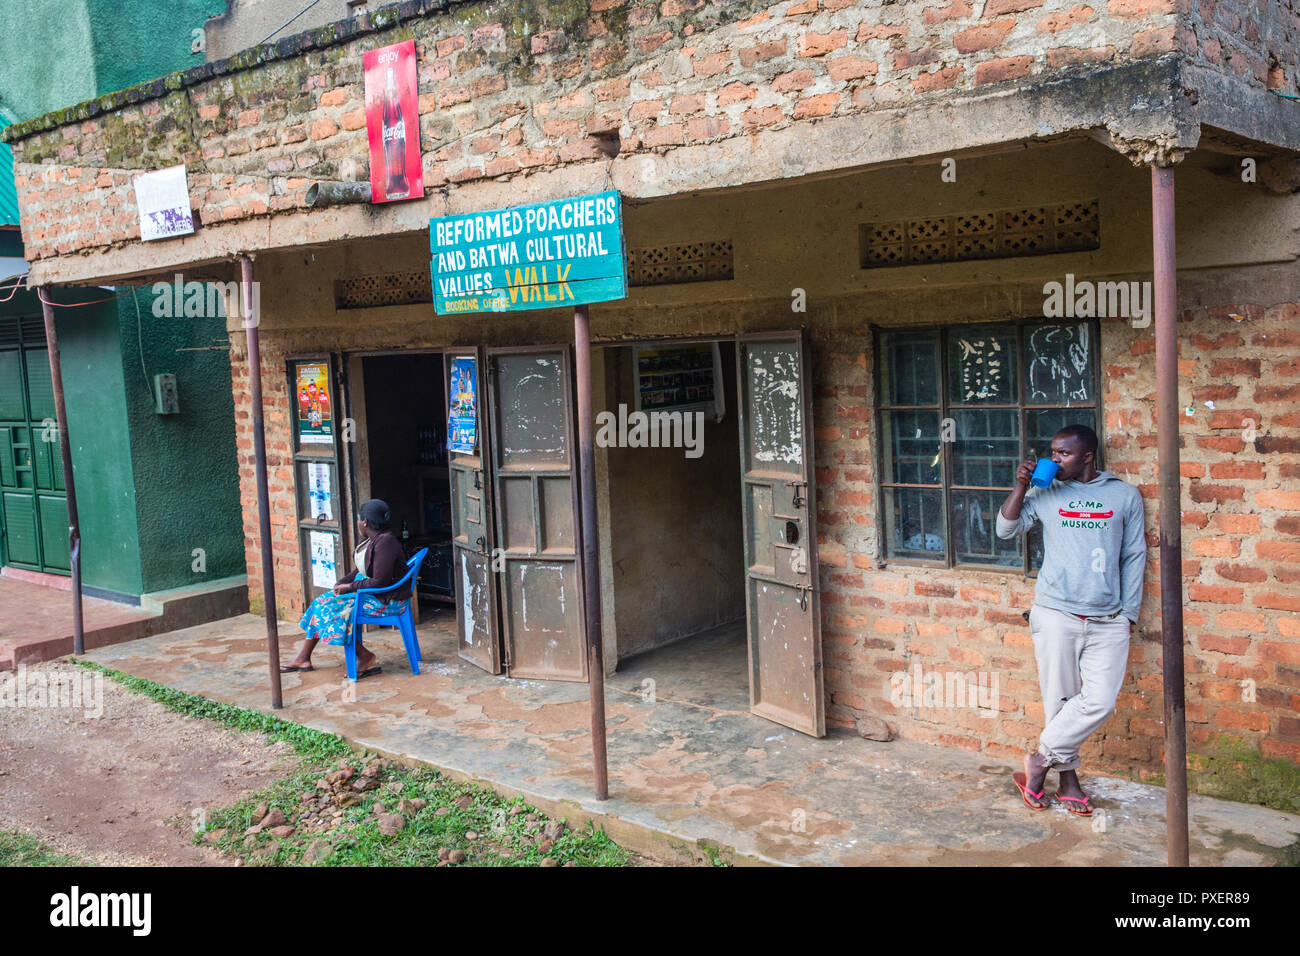 Center for Reformed Poachers and Batwa Cultural Values in Buhoma, Uganda - Stock Image